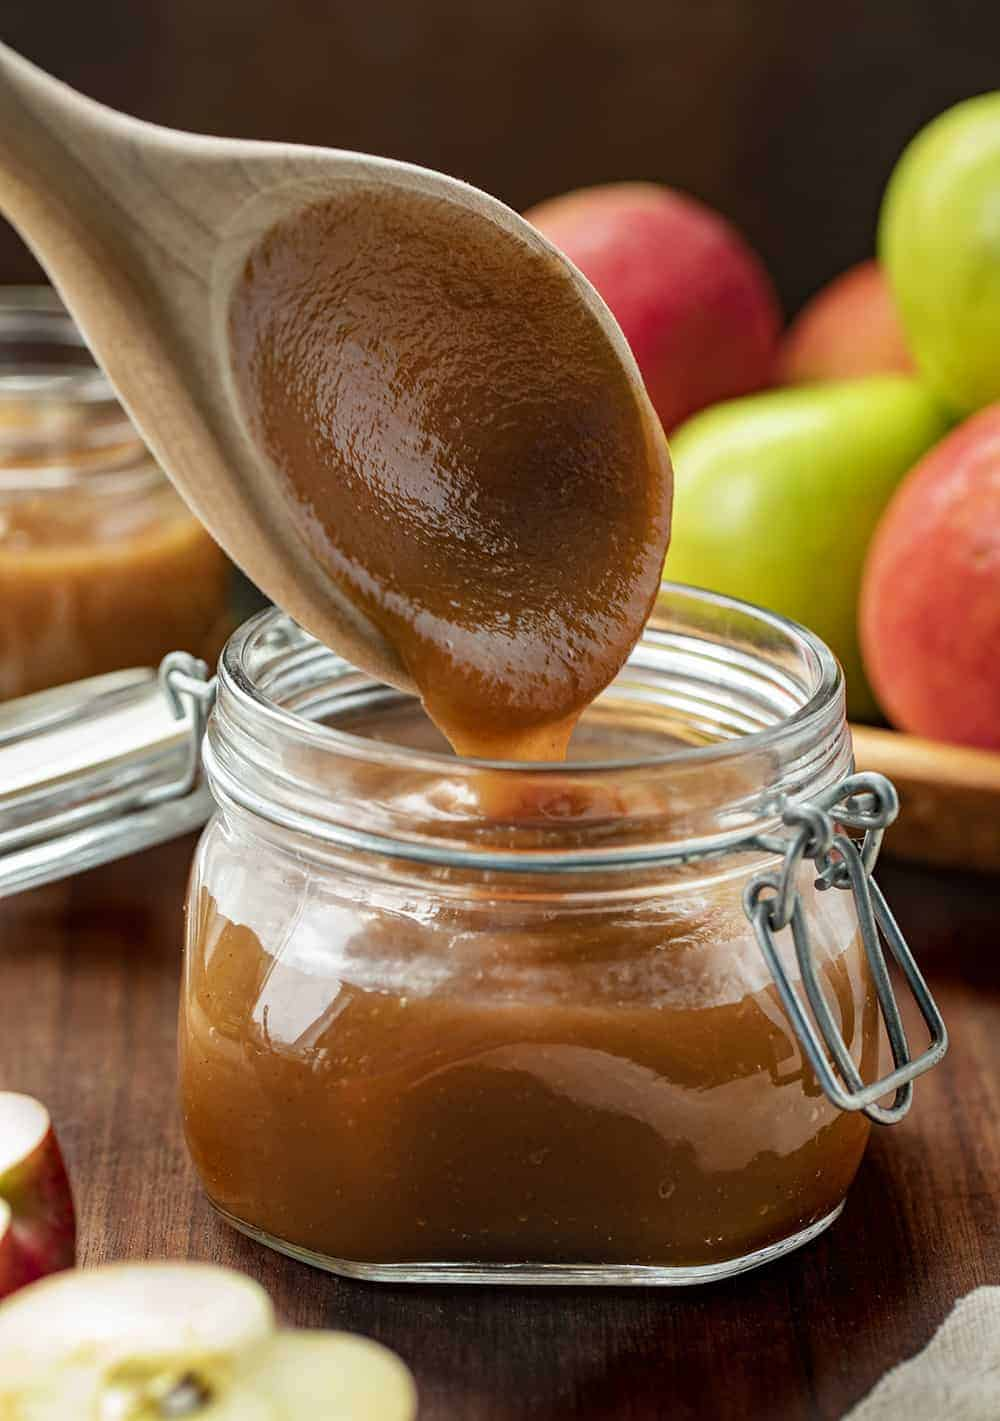 Adding Apple Butter to Jar